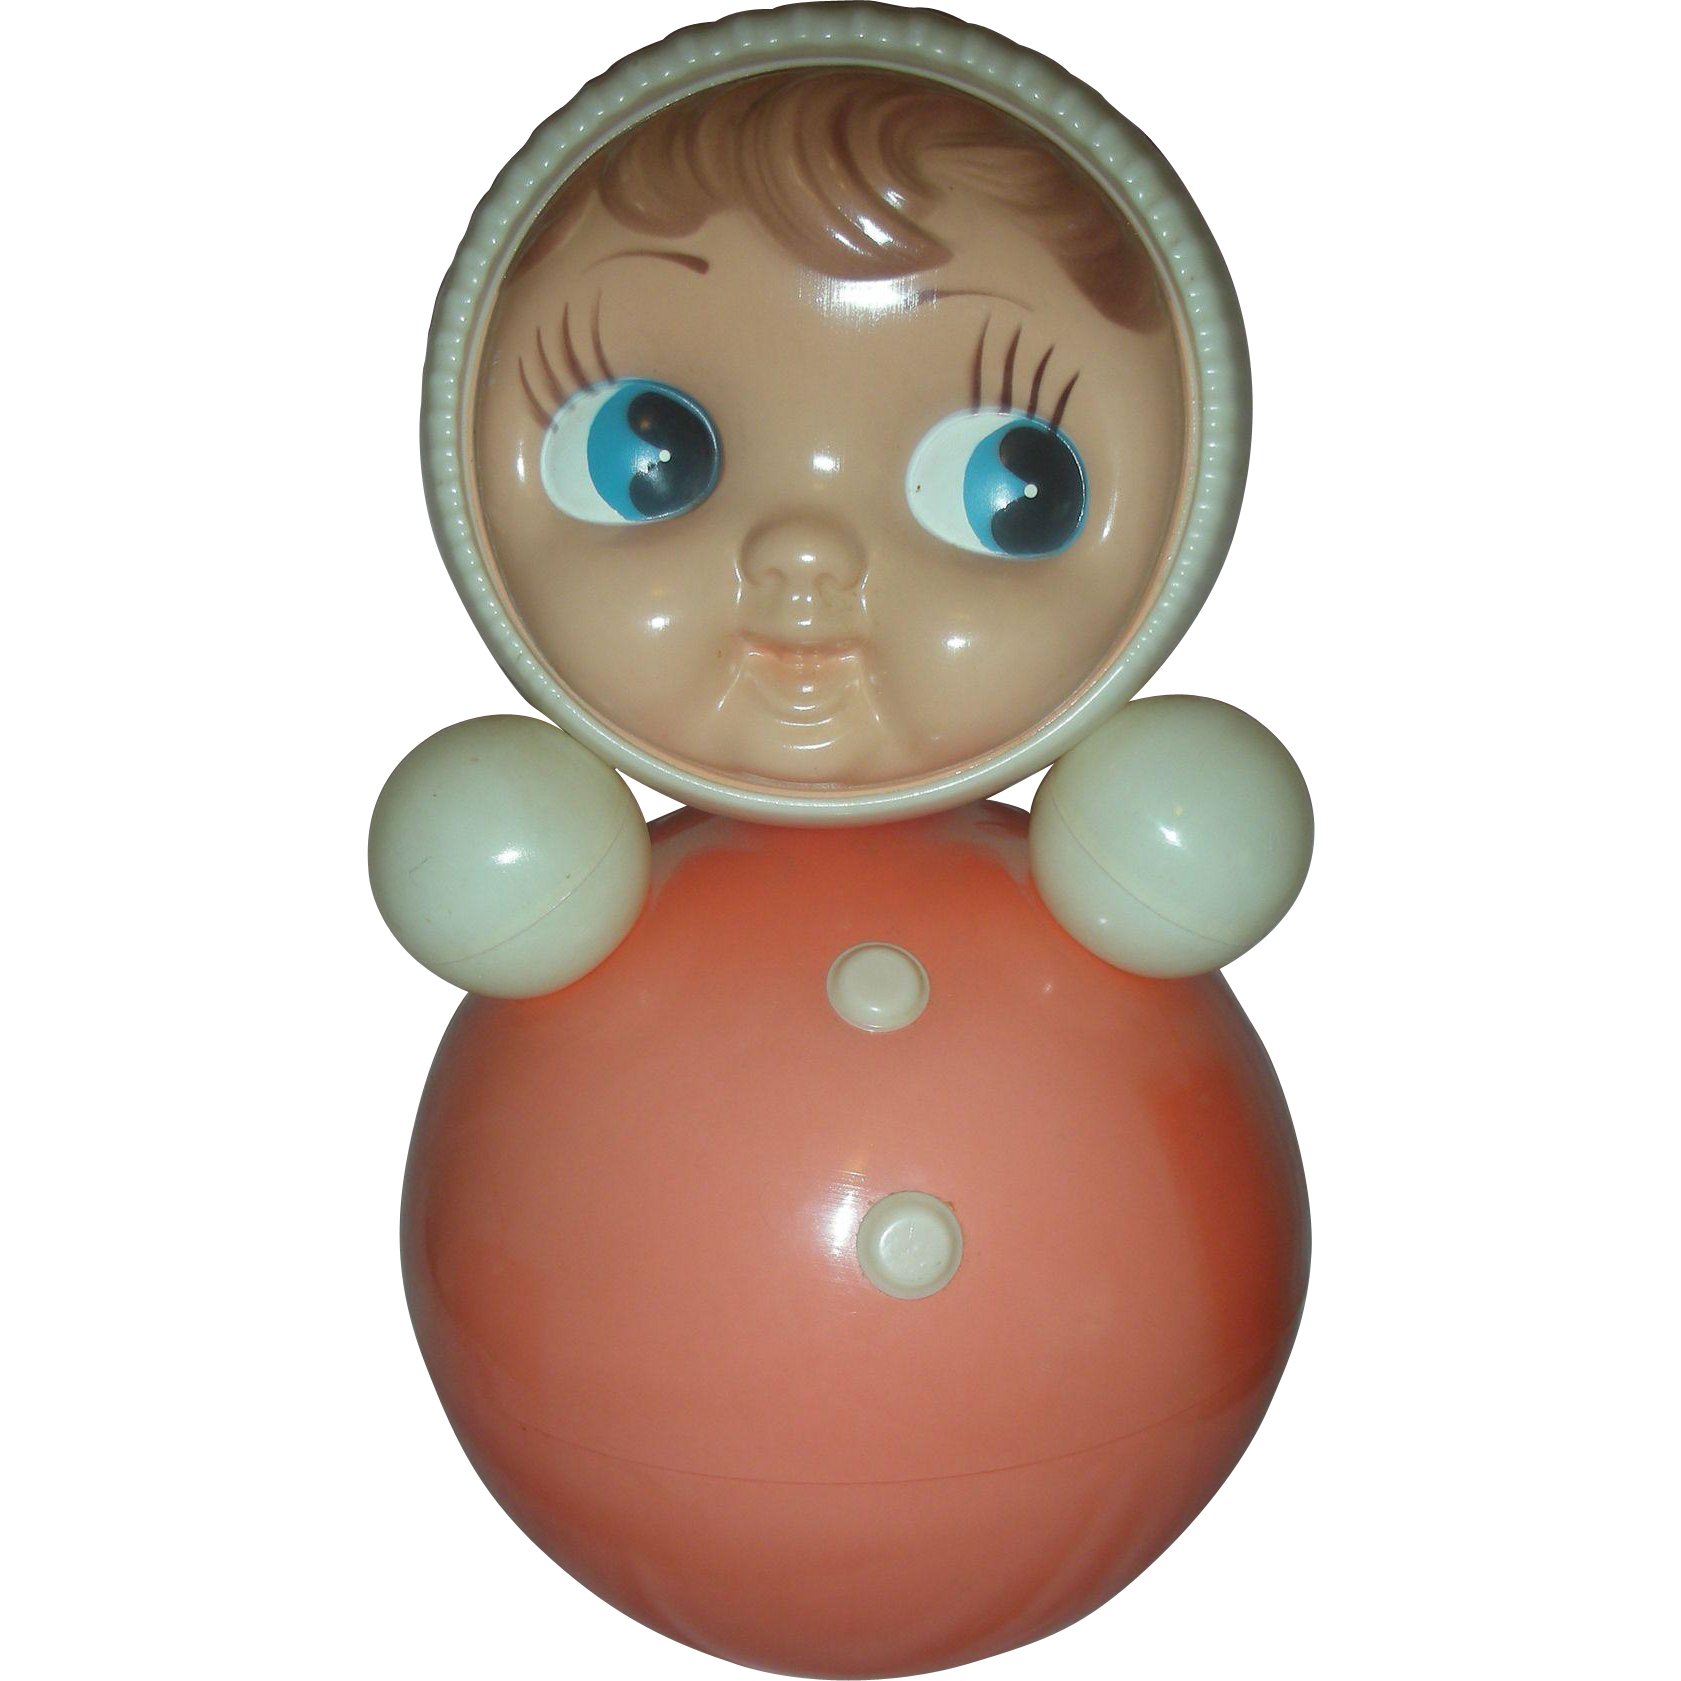 Vintage Large 16 inch Roly Poly Musical Doll USSR Nevalyashka Matrioshka Celluloid Toy